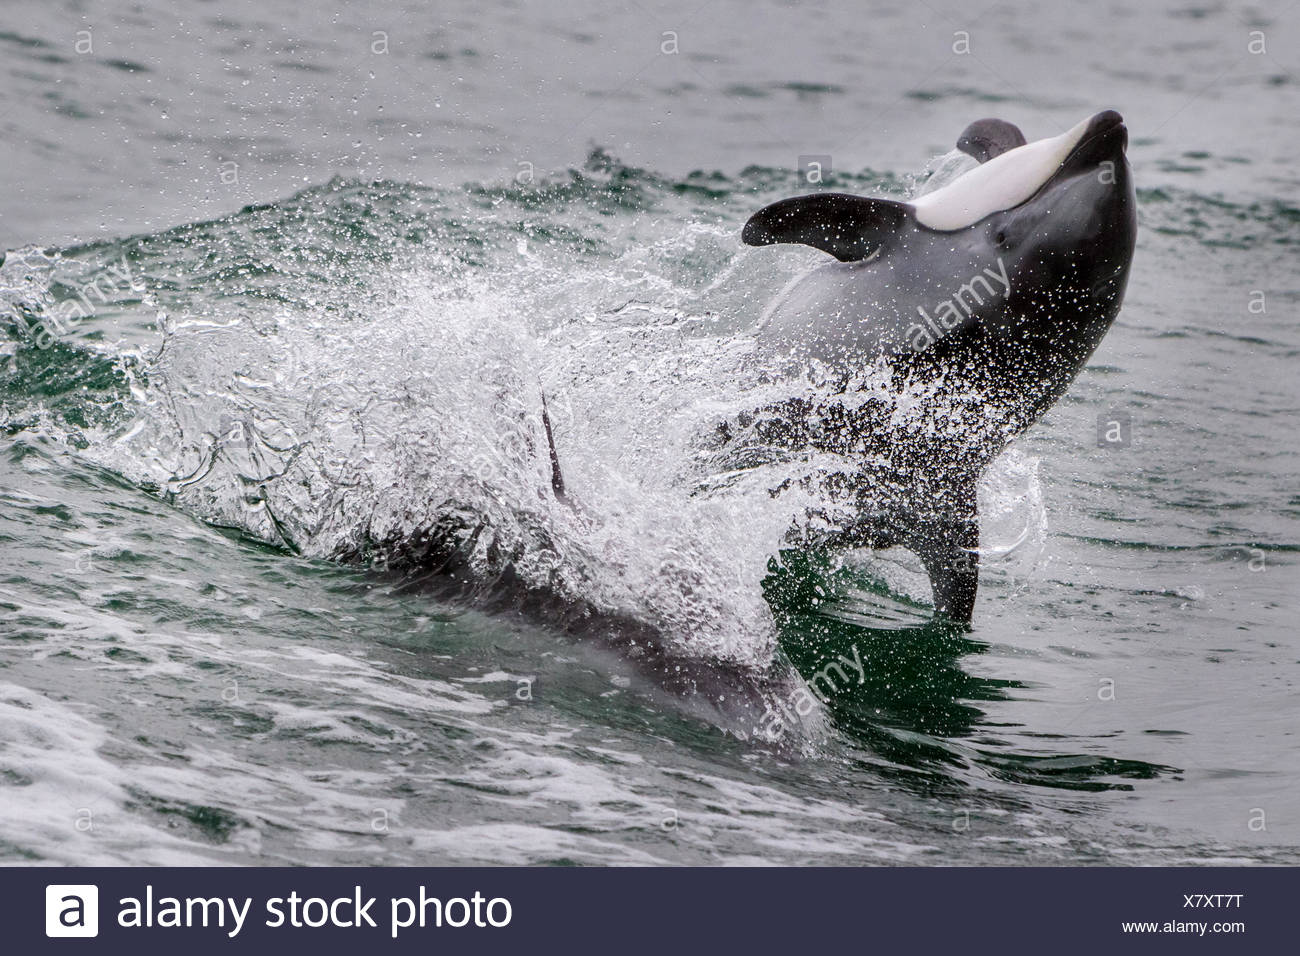 Pacific White Sided Dolphin jumping, back flip in Broughton Archipelago Marine Park, British Columbia, Canada. - Stock Image